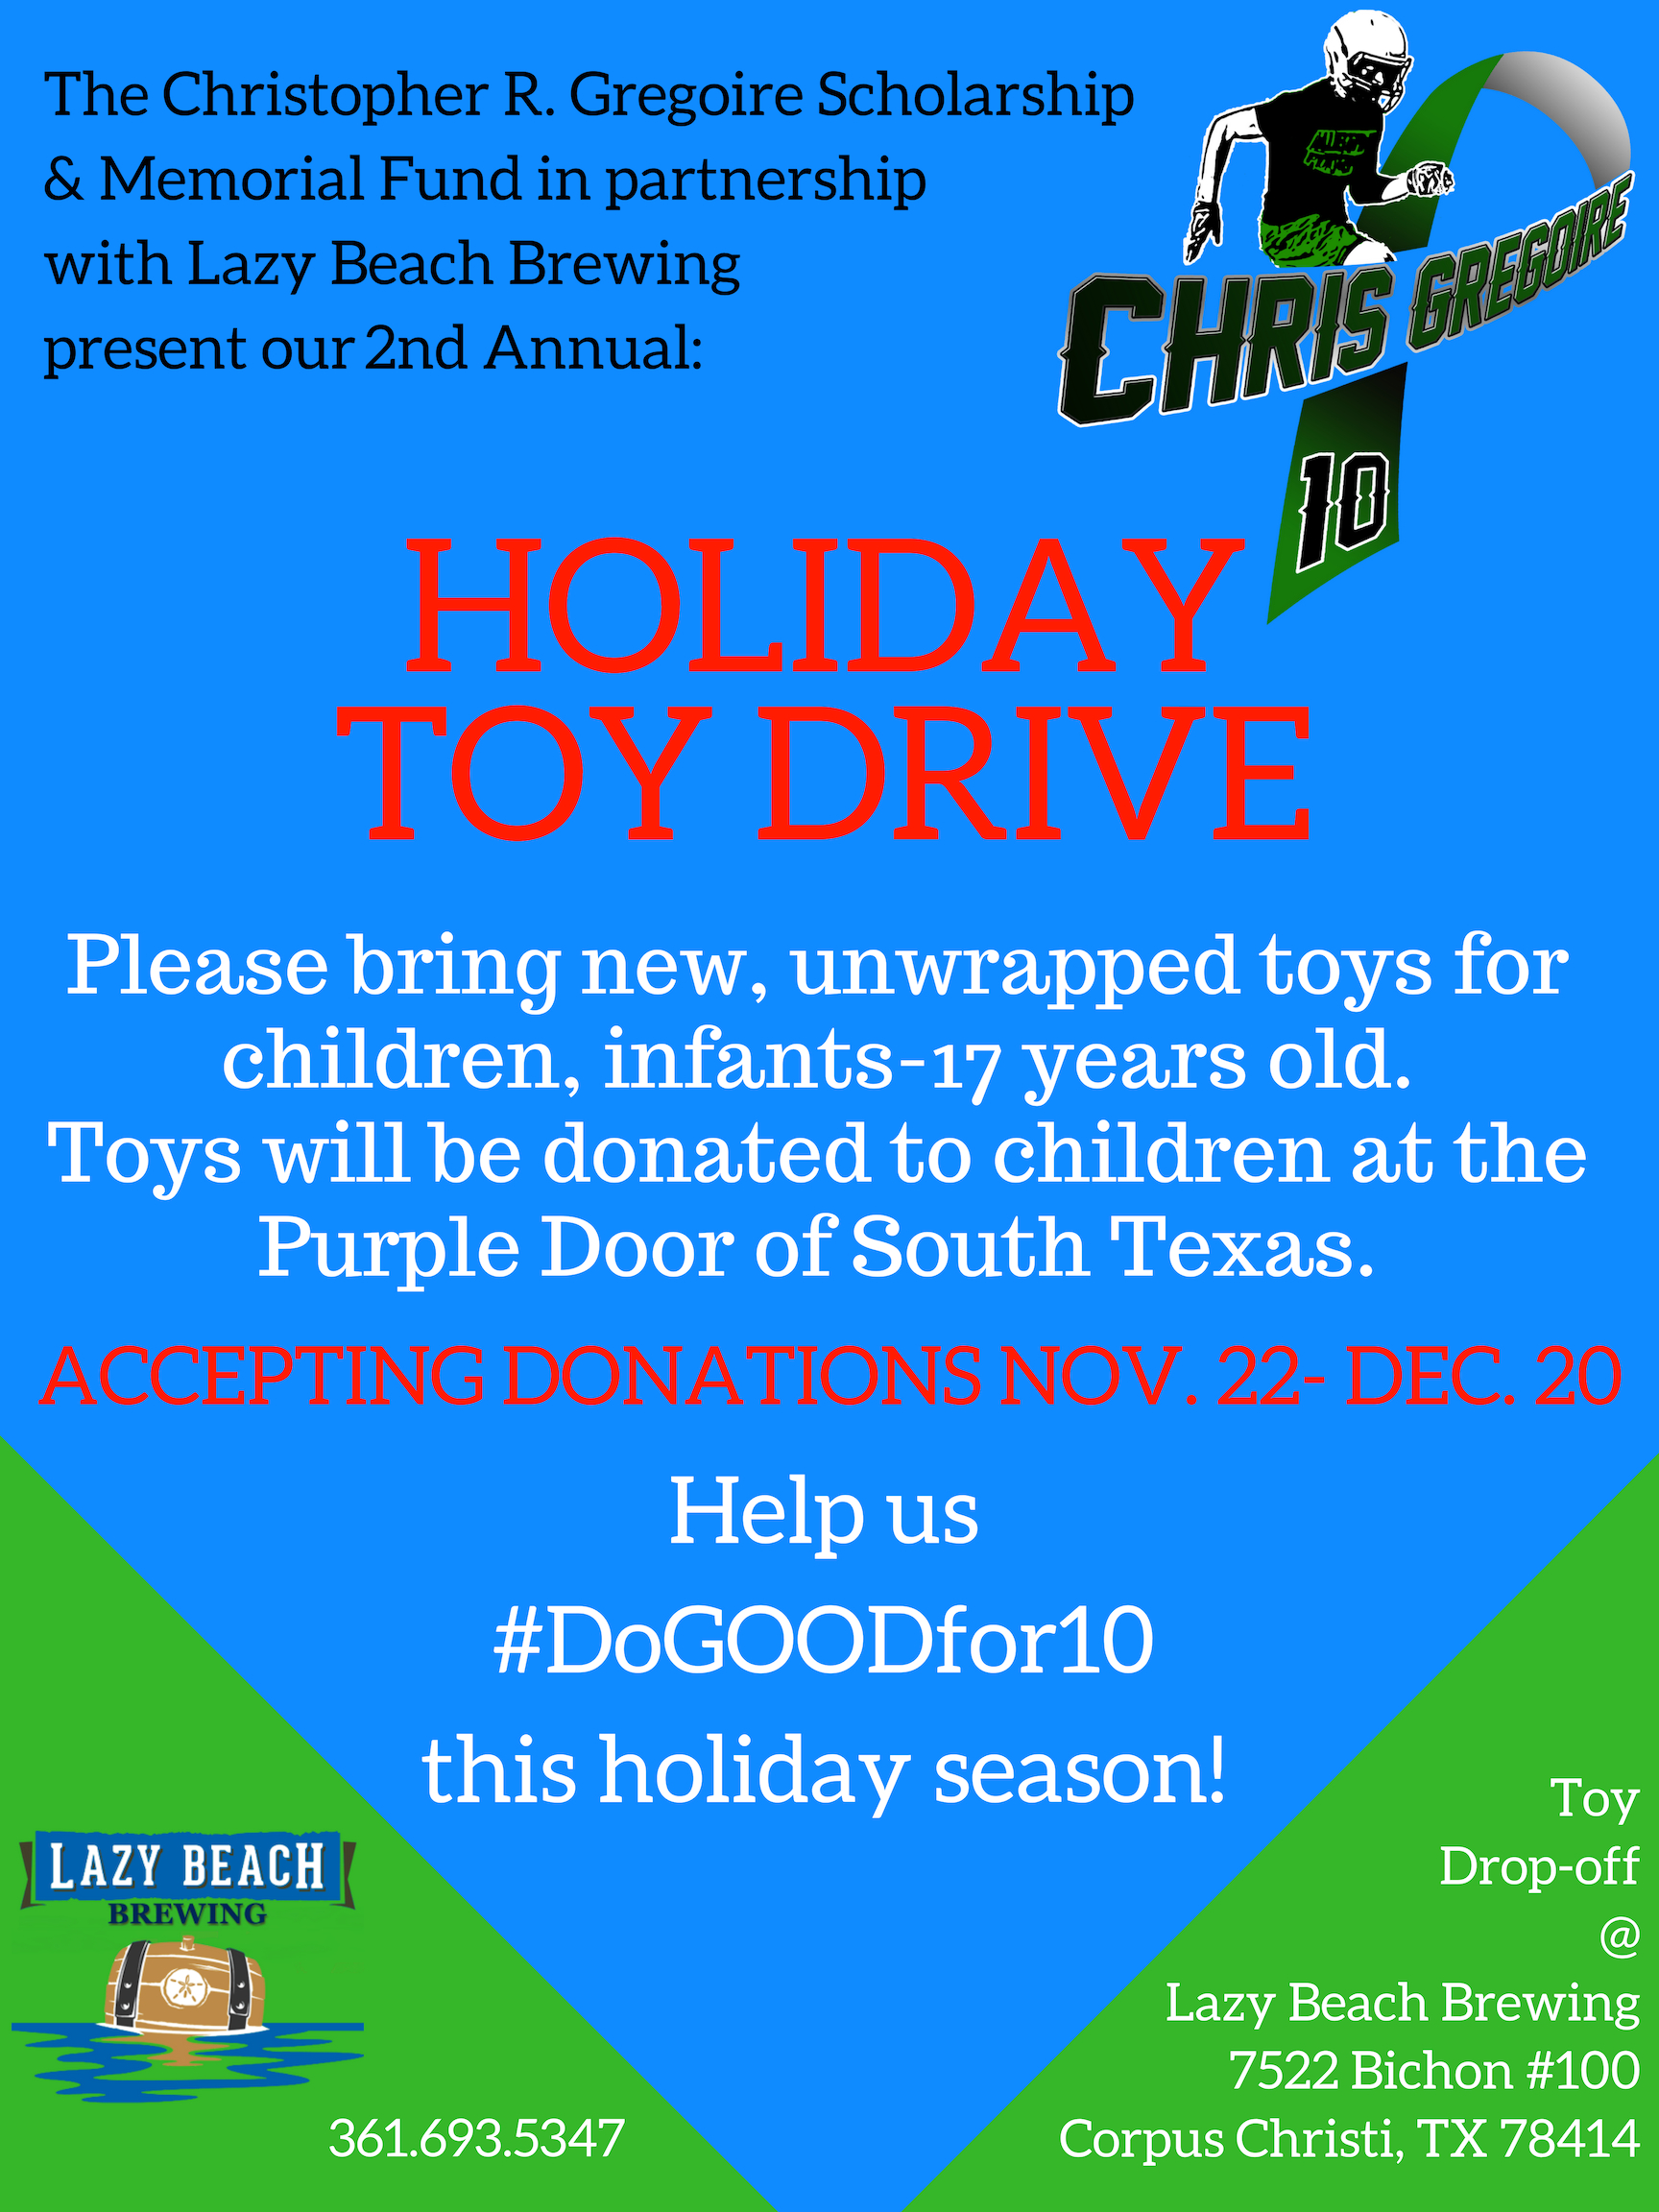 Toy Drive at Lazy Beach!